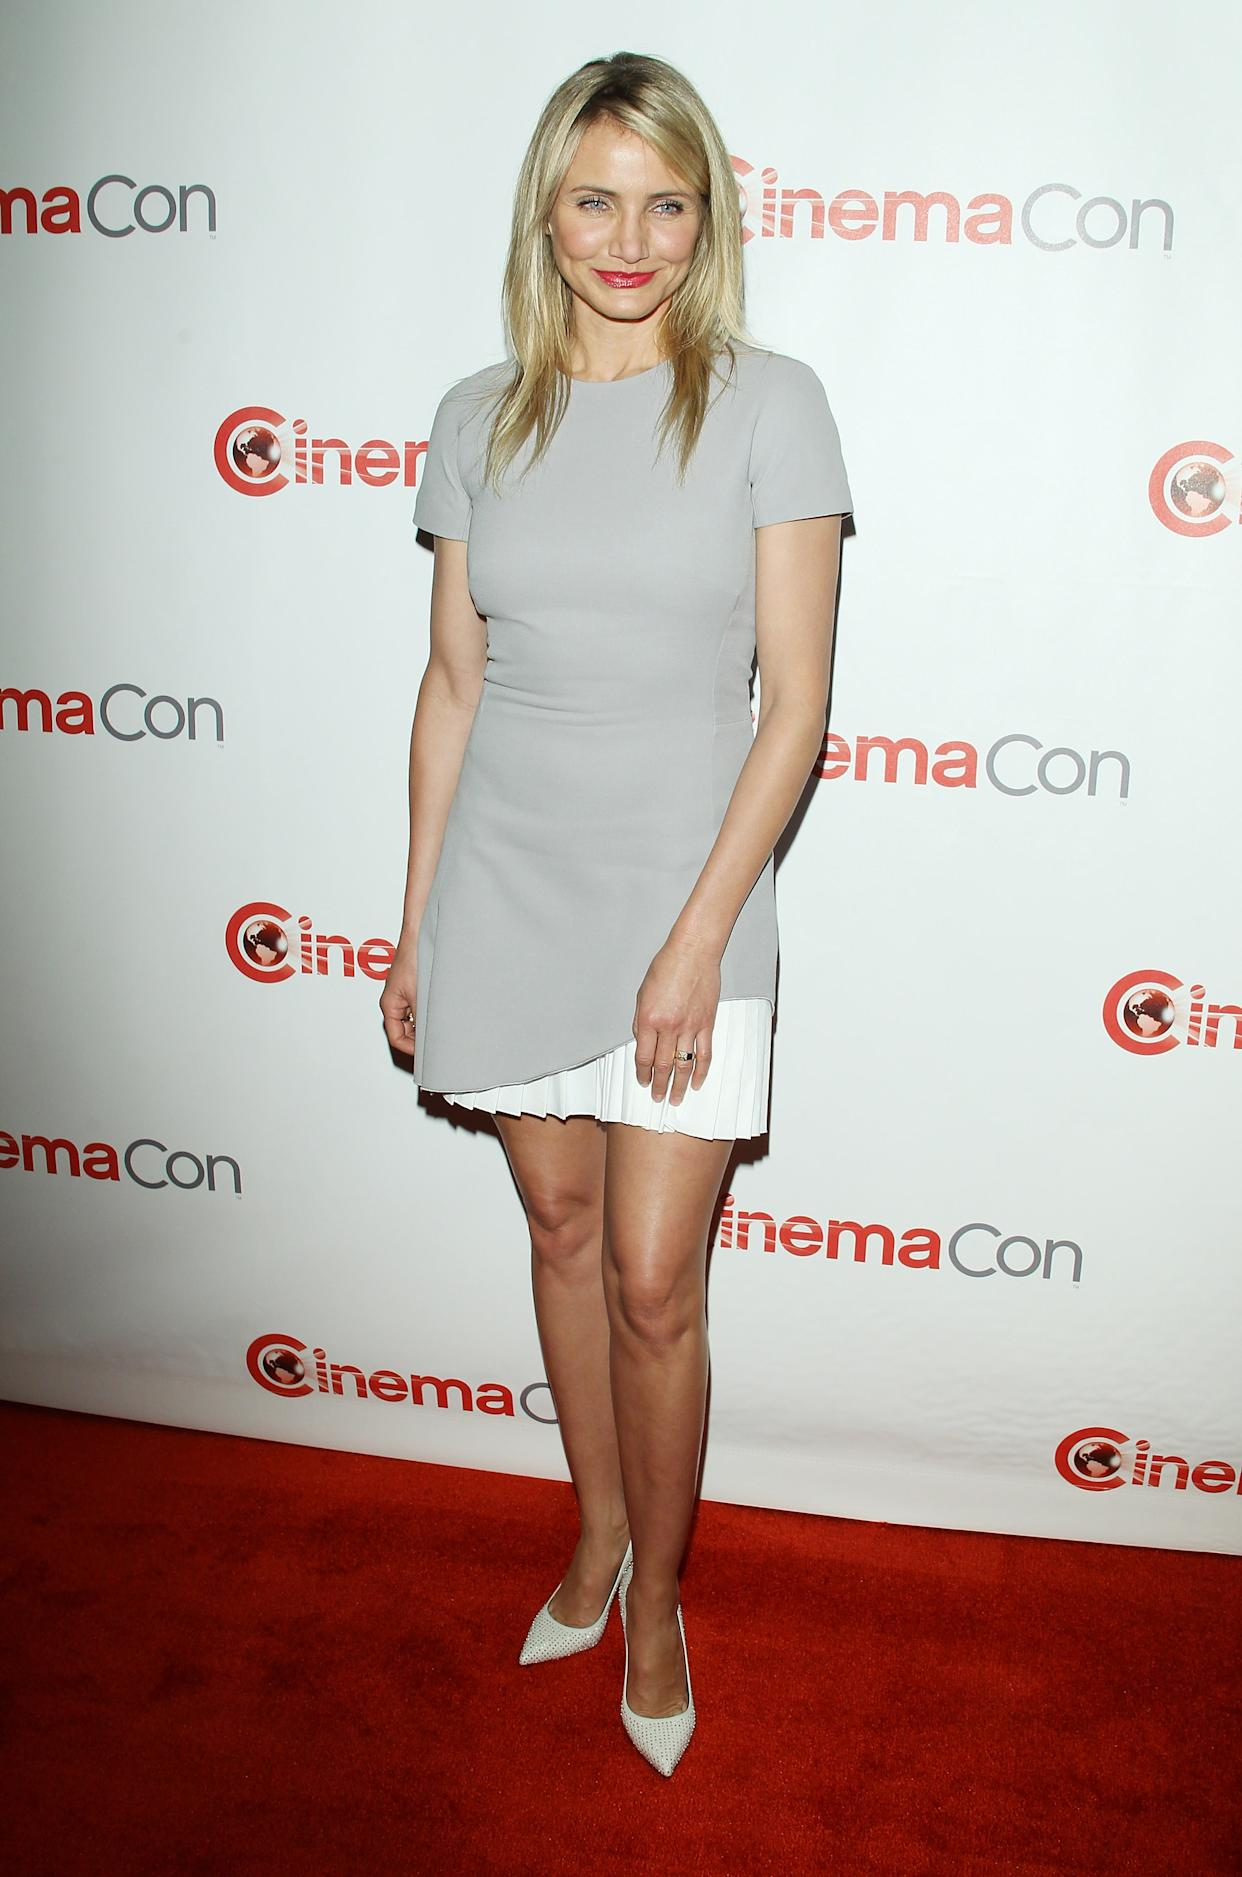 Cinemacon 2014 - Day 4